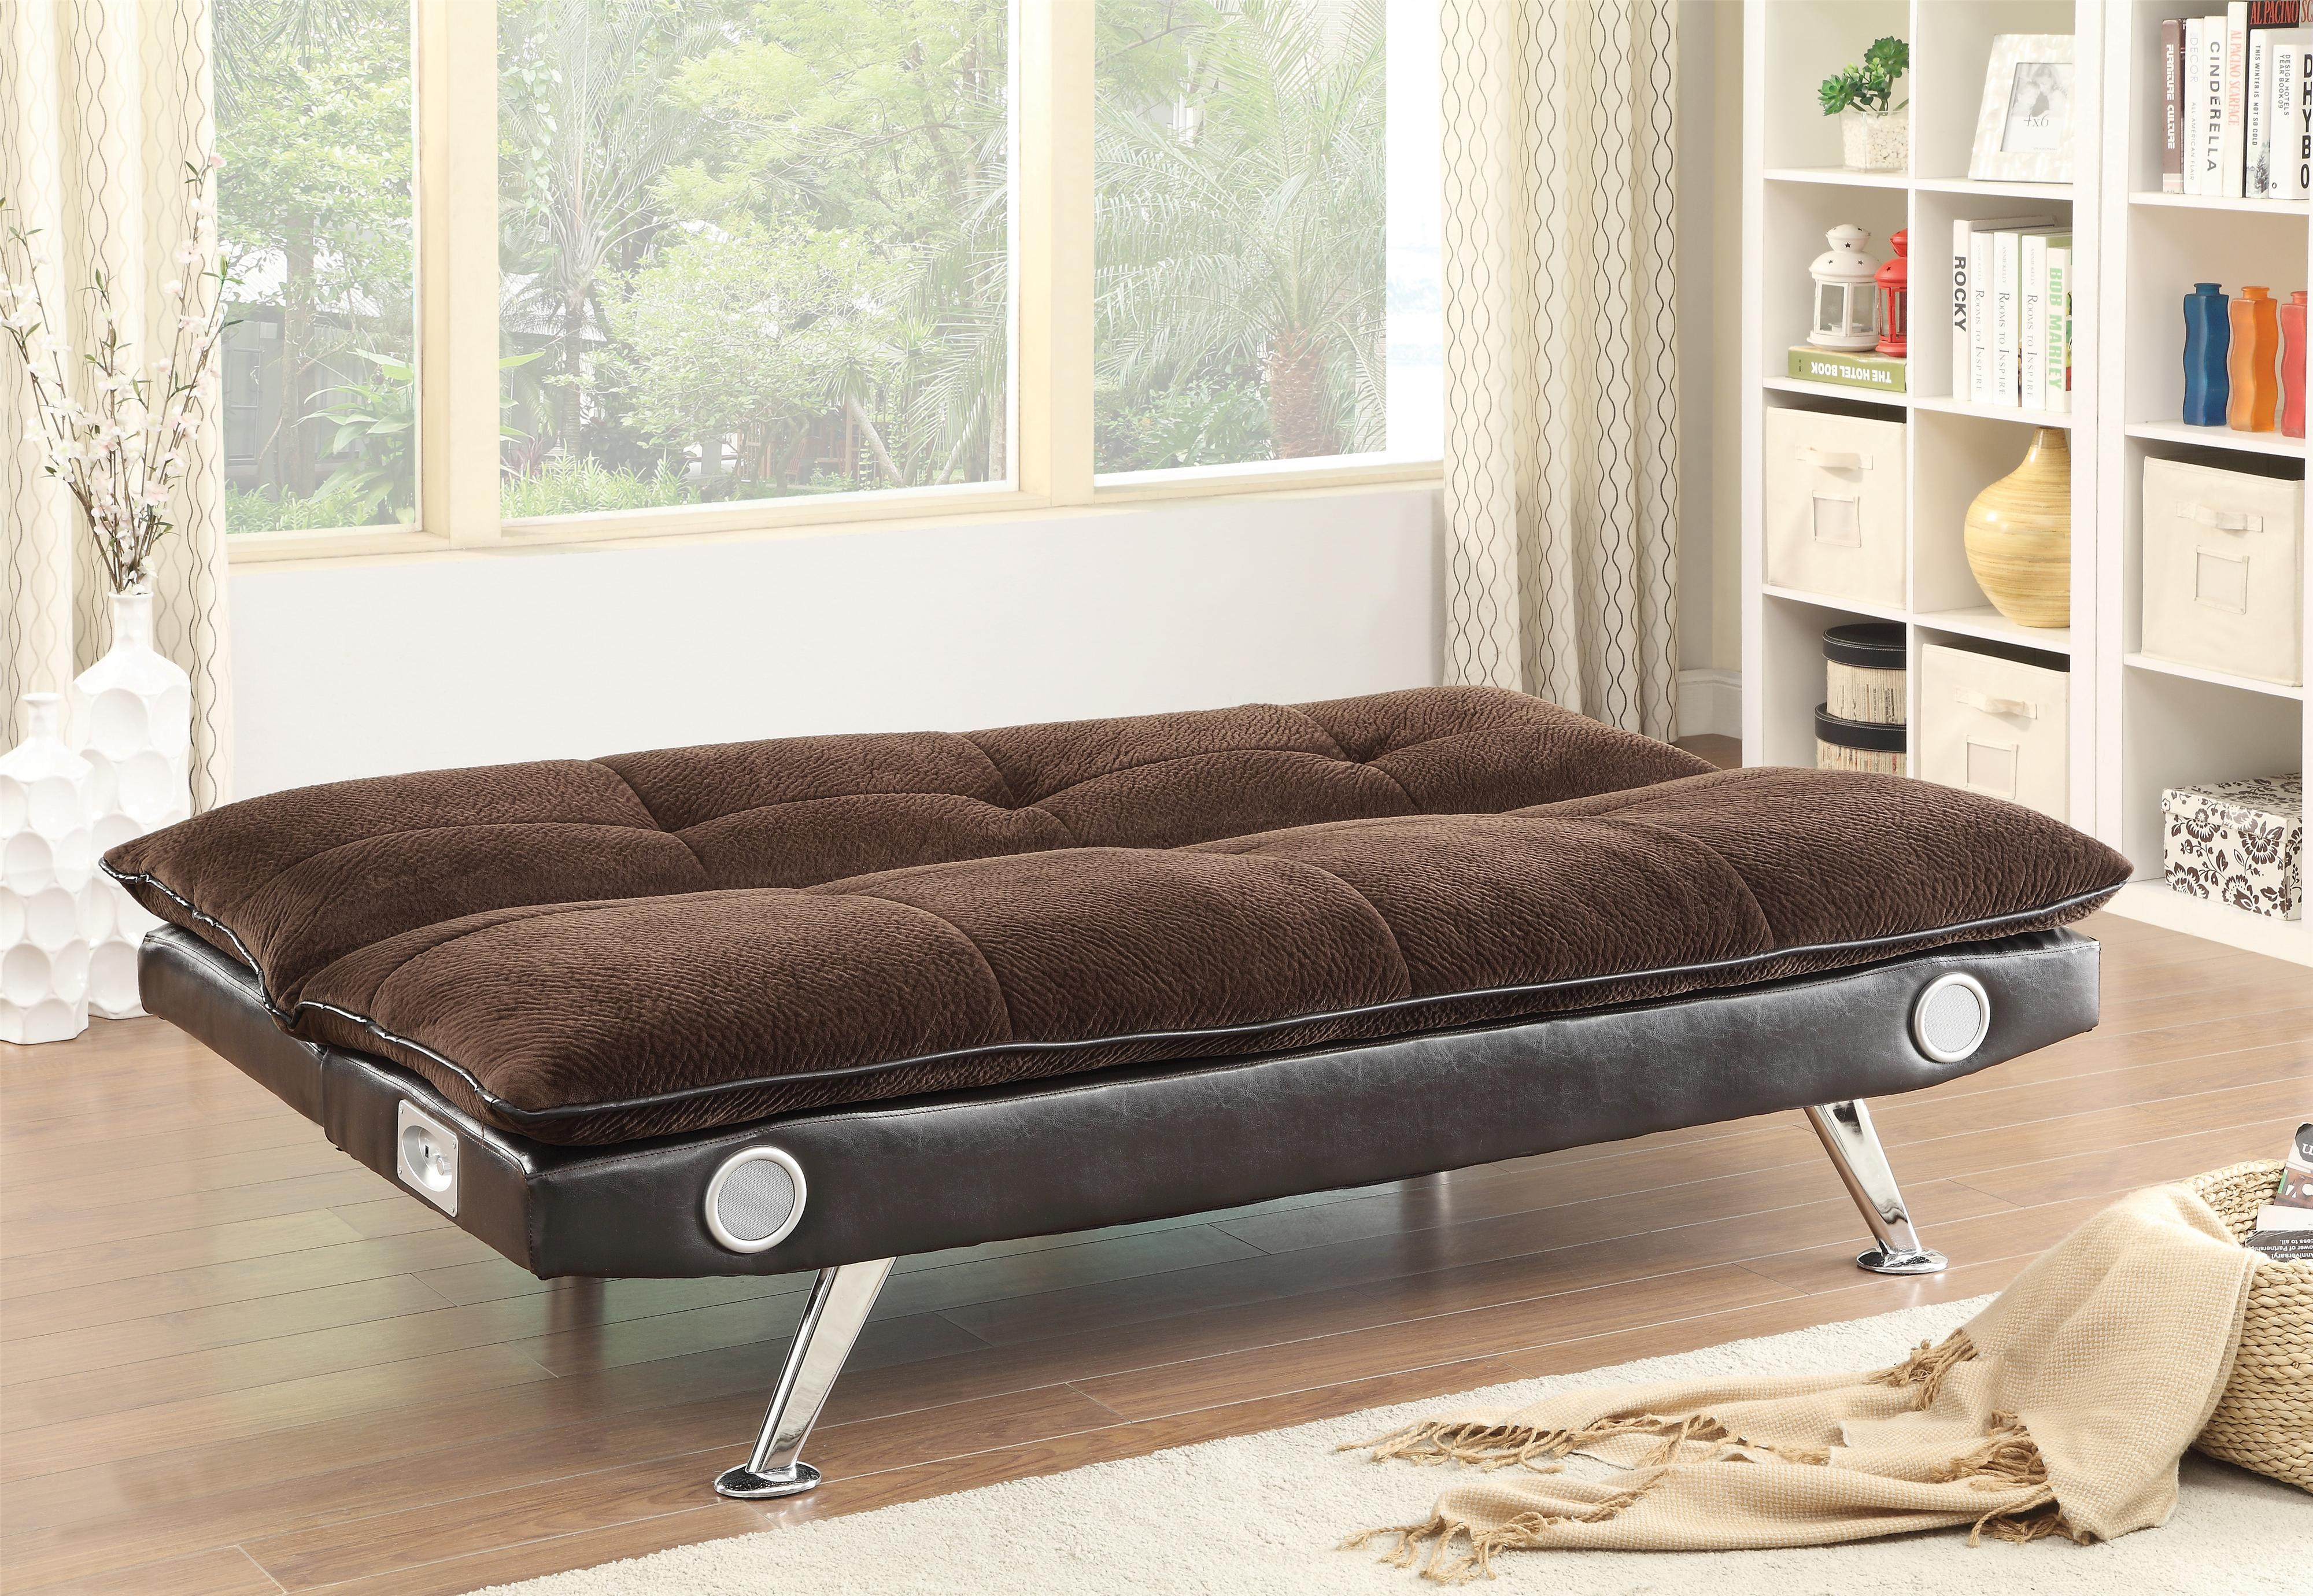 products_coaster_color_sofa beds_500047-b4